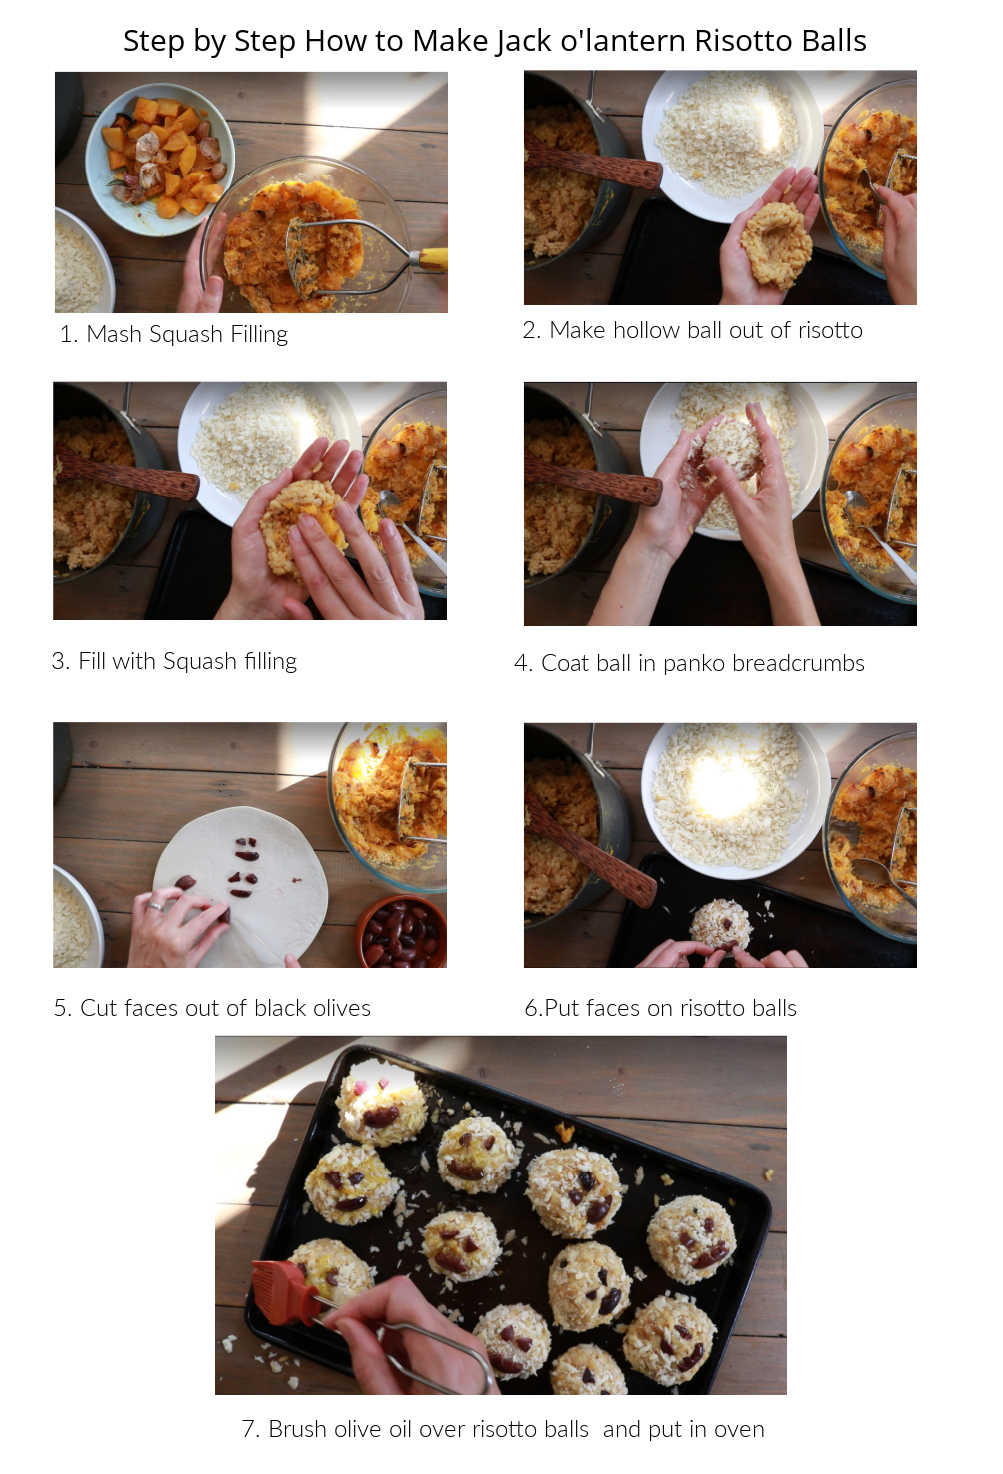 Visual How To make the Jack O Lantern Risotto Balls